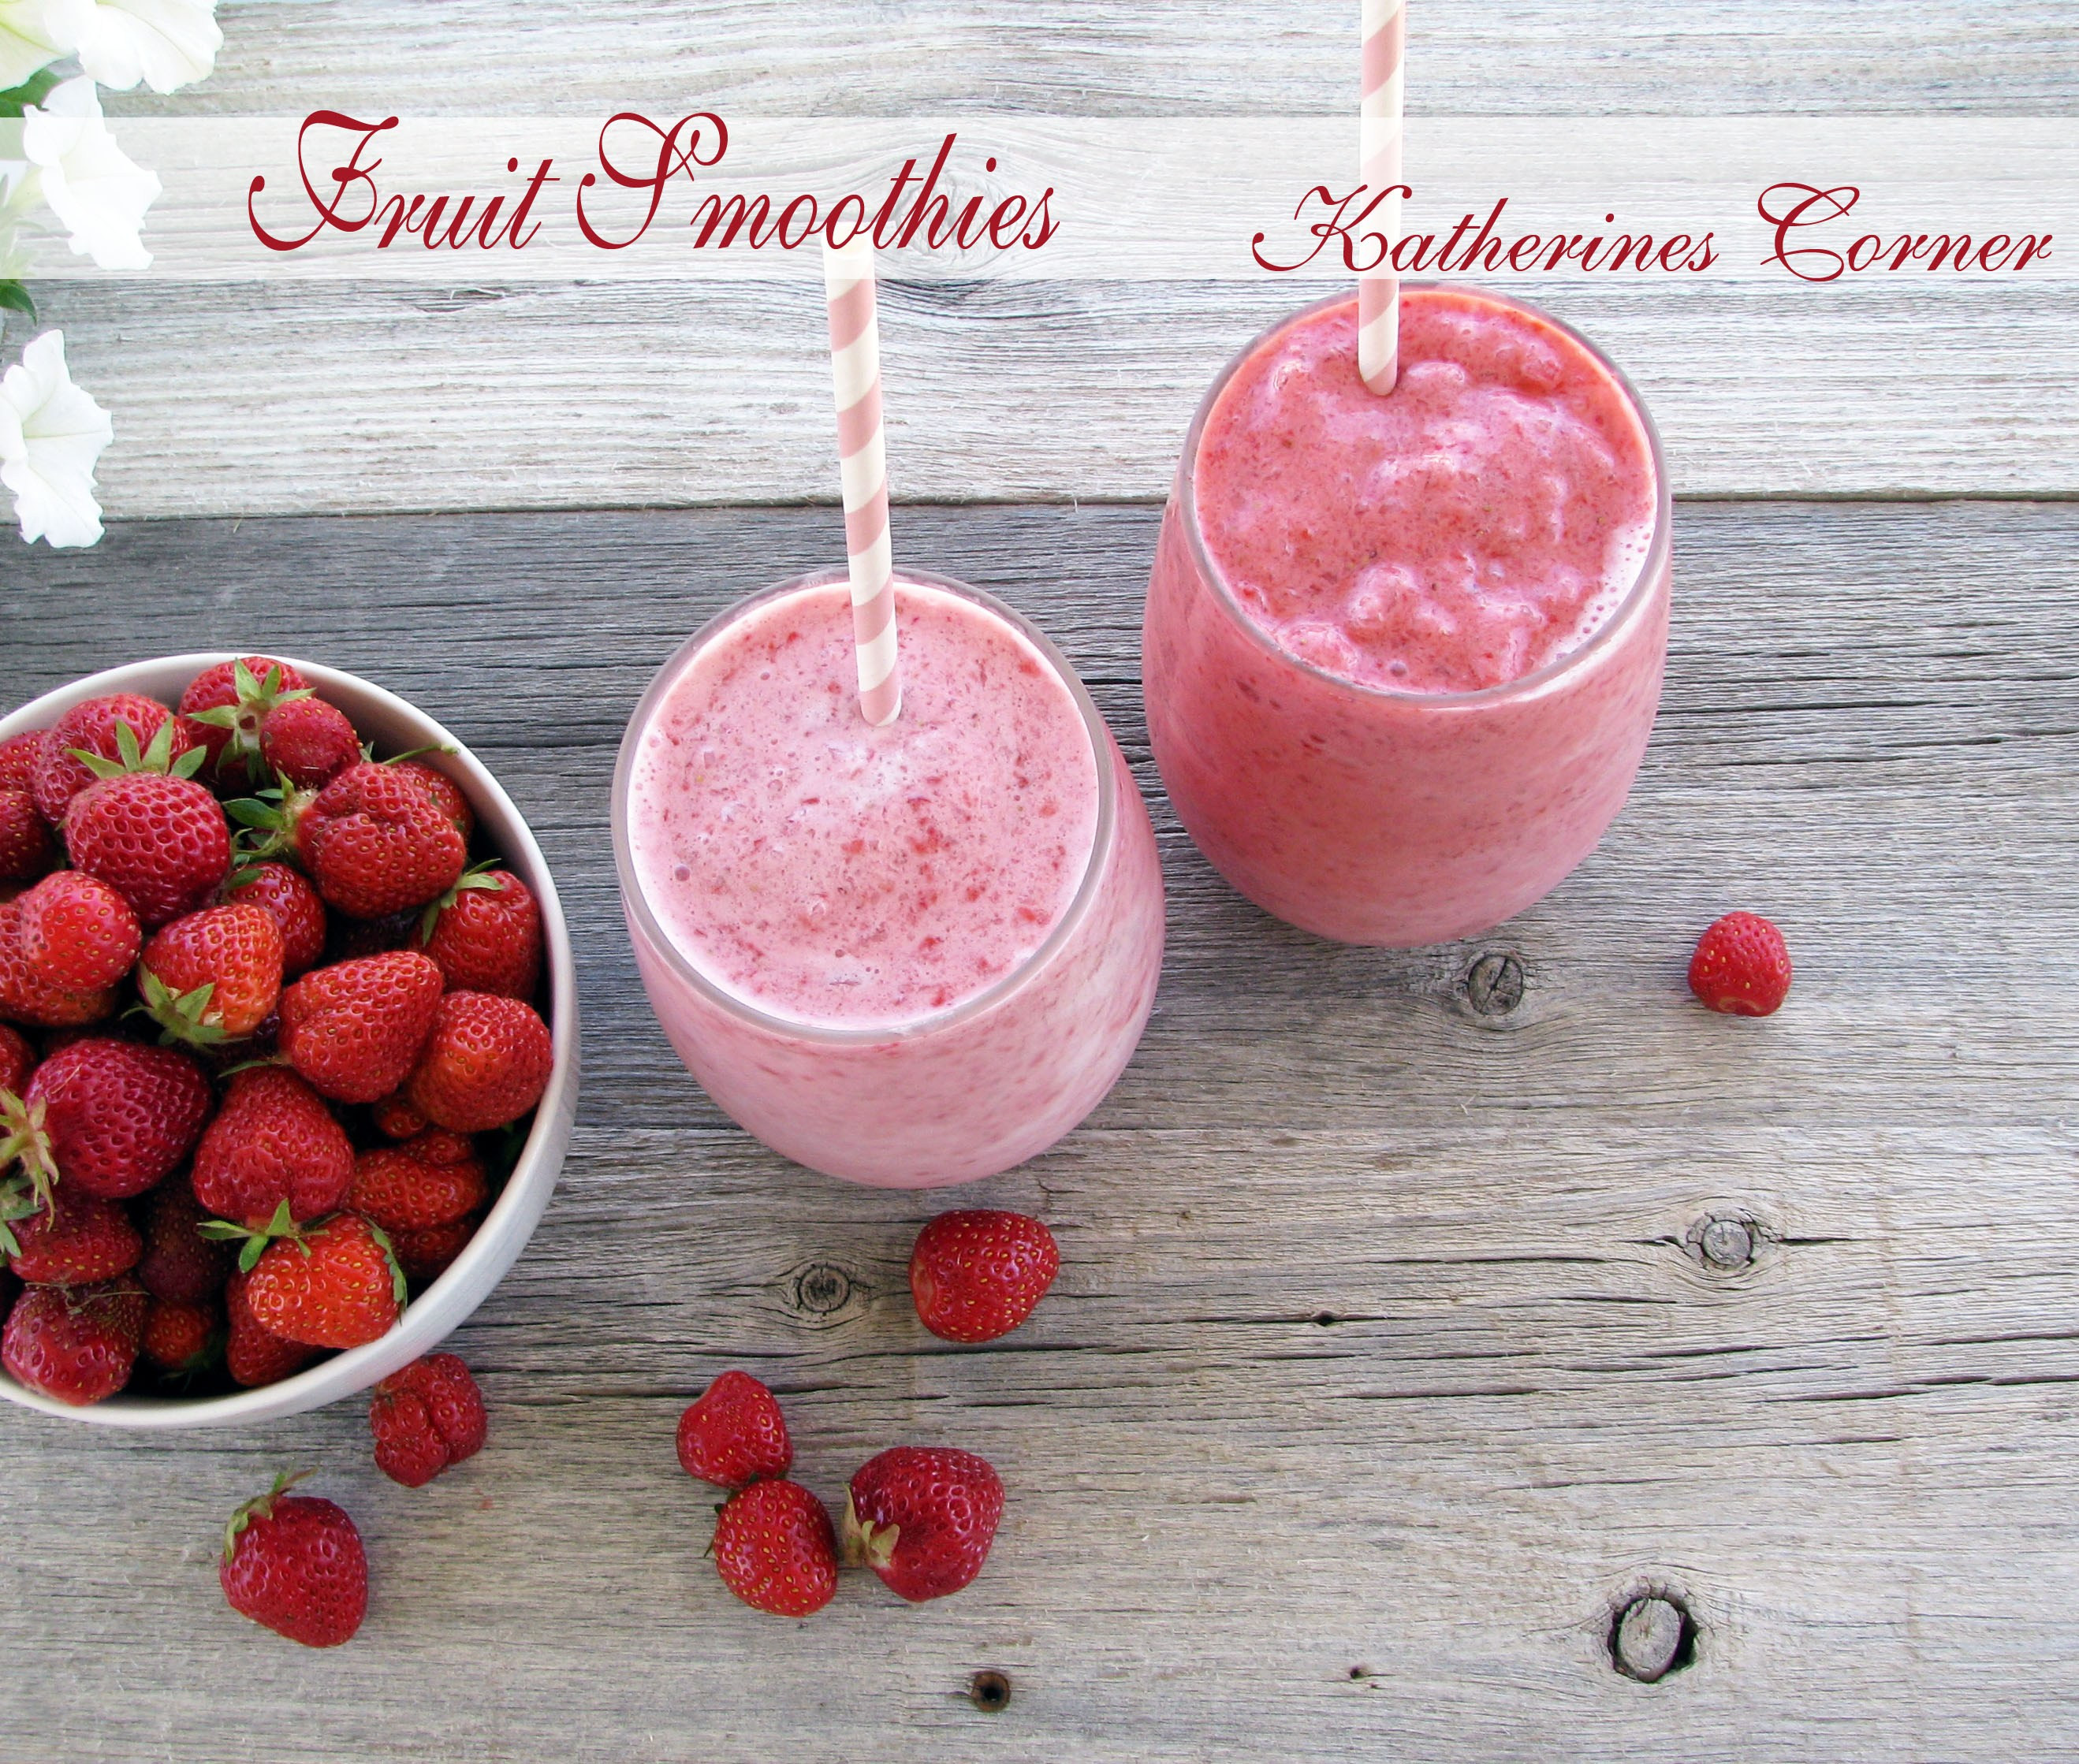 Low Calorie Fruit Smoothie Recipes  Low Fat Fruit Smoothies Katherines Corner